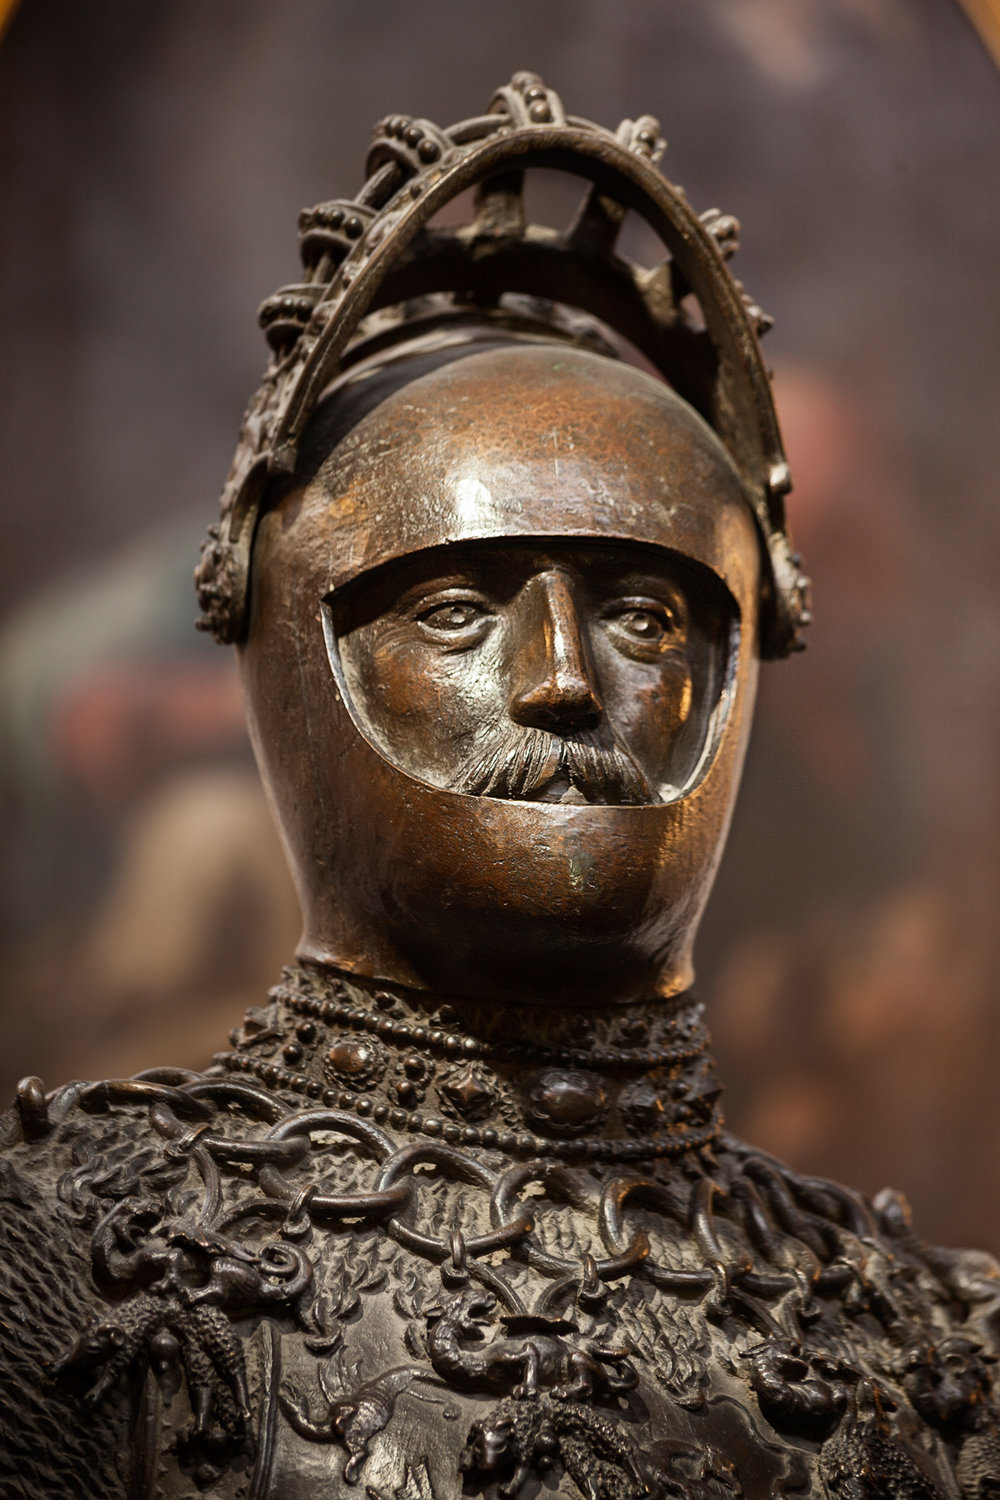 A bronze statue of King Arthur, legendary king of the 6th century Britons, is located in the Royal Chapel at Innsbruck, Austria, on the grave of Emperor Maximilian I. The cast was created by Peter Vischer the Elder in 1513 according to a design by Albrecht Dürer in 1509.  Innsbruck, Austria.